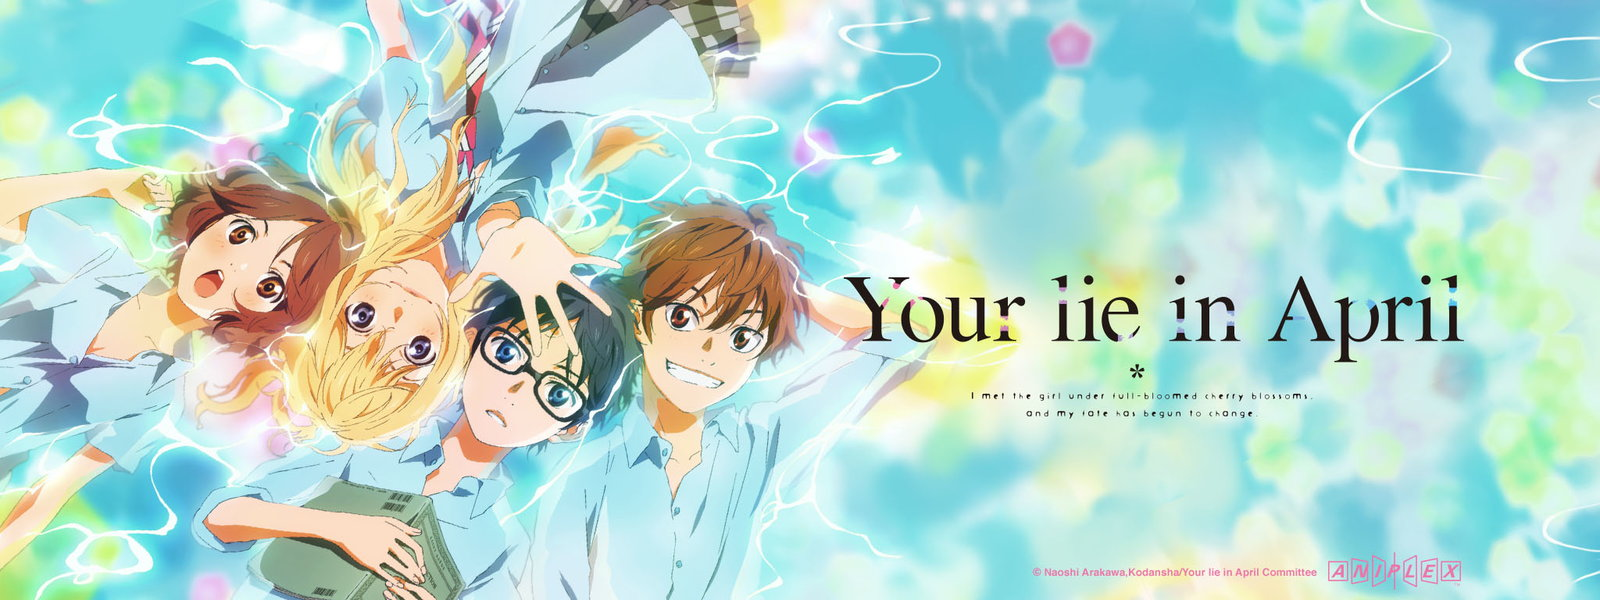 Your Lie In April Backgrounds, Compatible - PC, Mobile, Gadgets| 1600x600 px